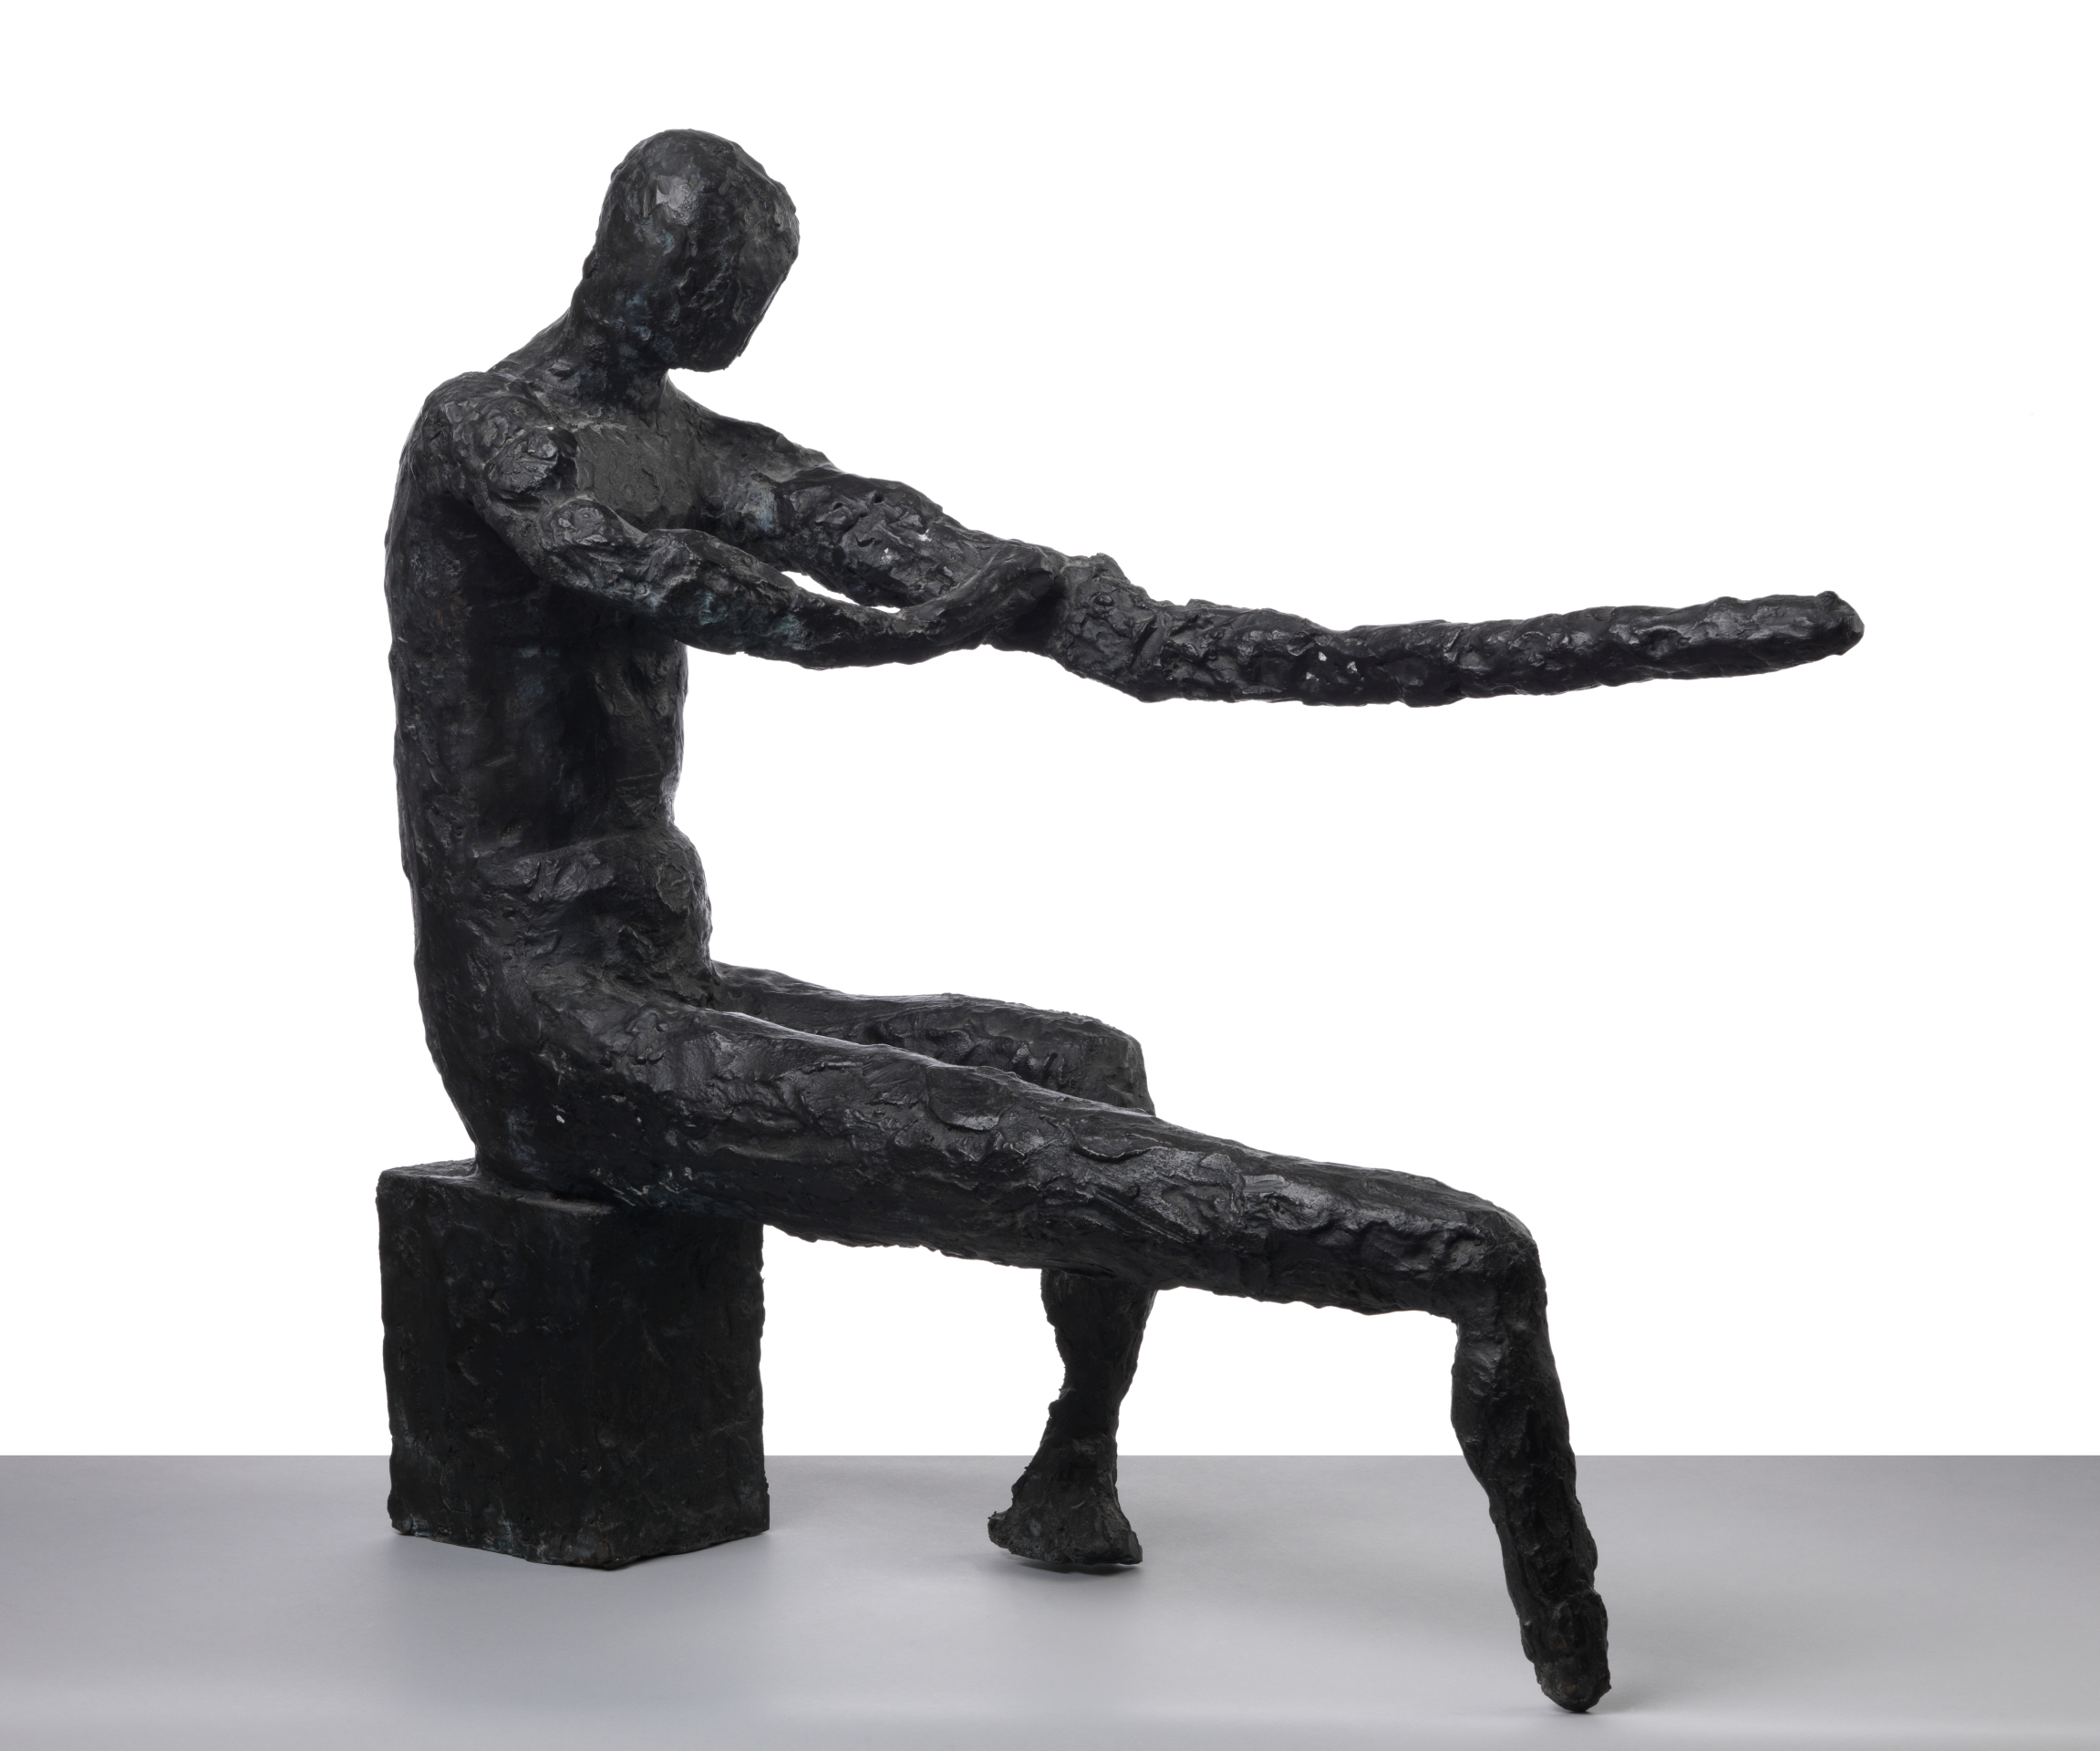 Seated Man, bronze, 61 x 23 x 65 cm, 1954-1960, cast 1960. Photo: Jaka Babnik